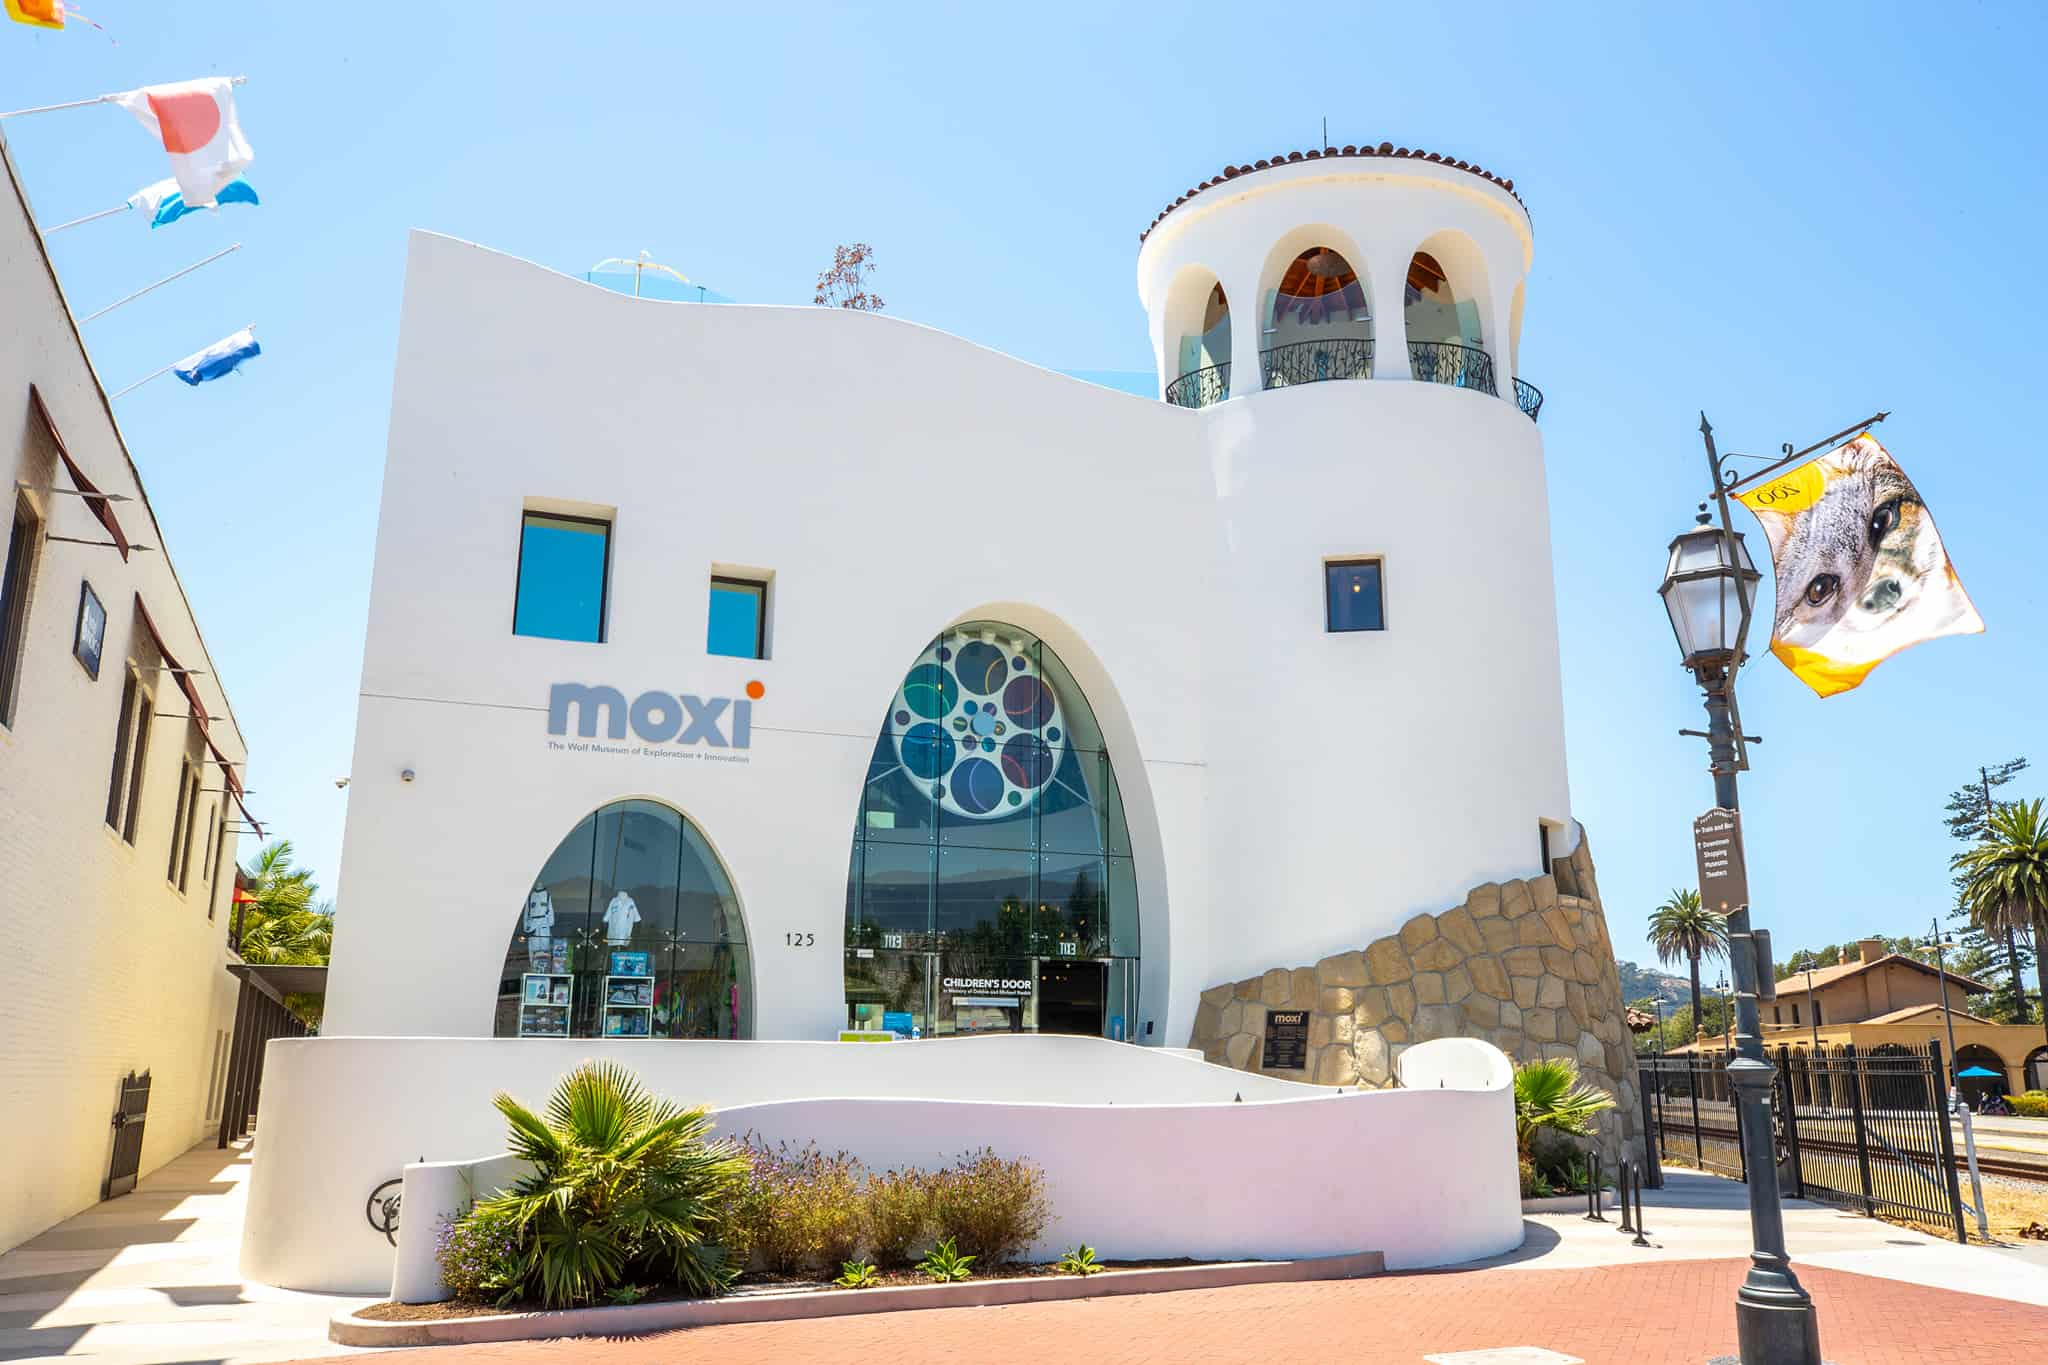 MOXI: The Wolf Museum of Exploration and Innovation